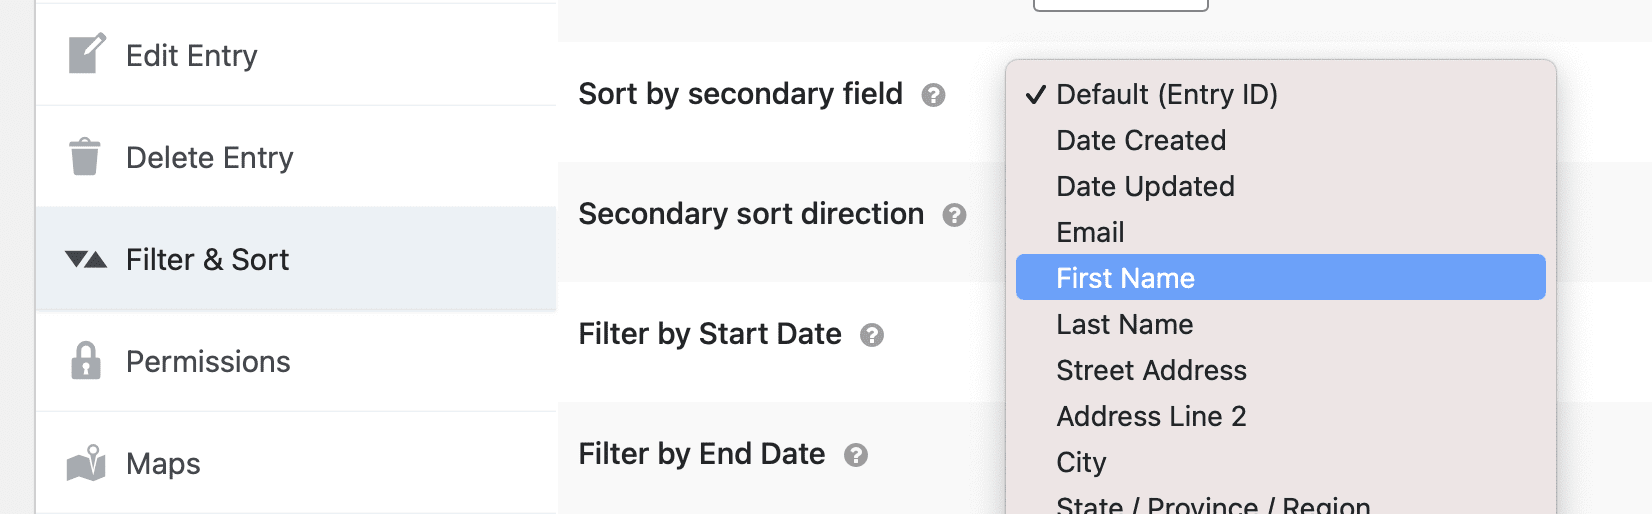 Screenshot of the Settings metabox with 'Sort by secondary field' selected.